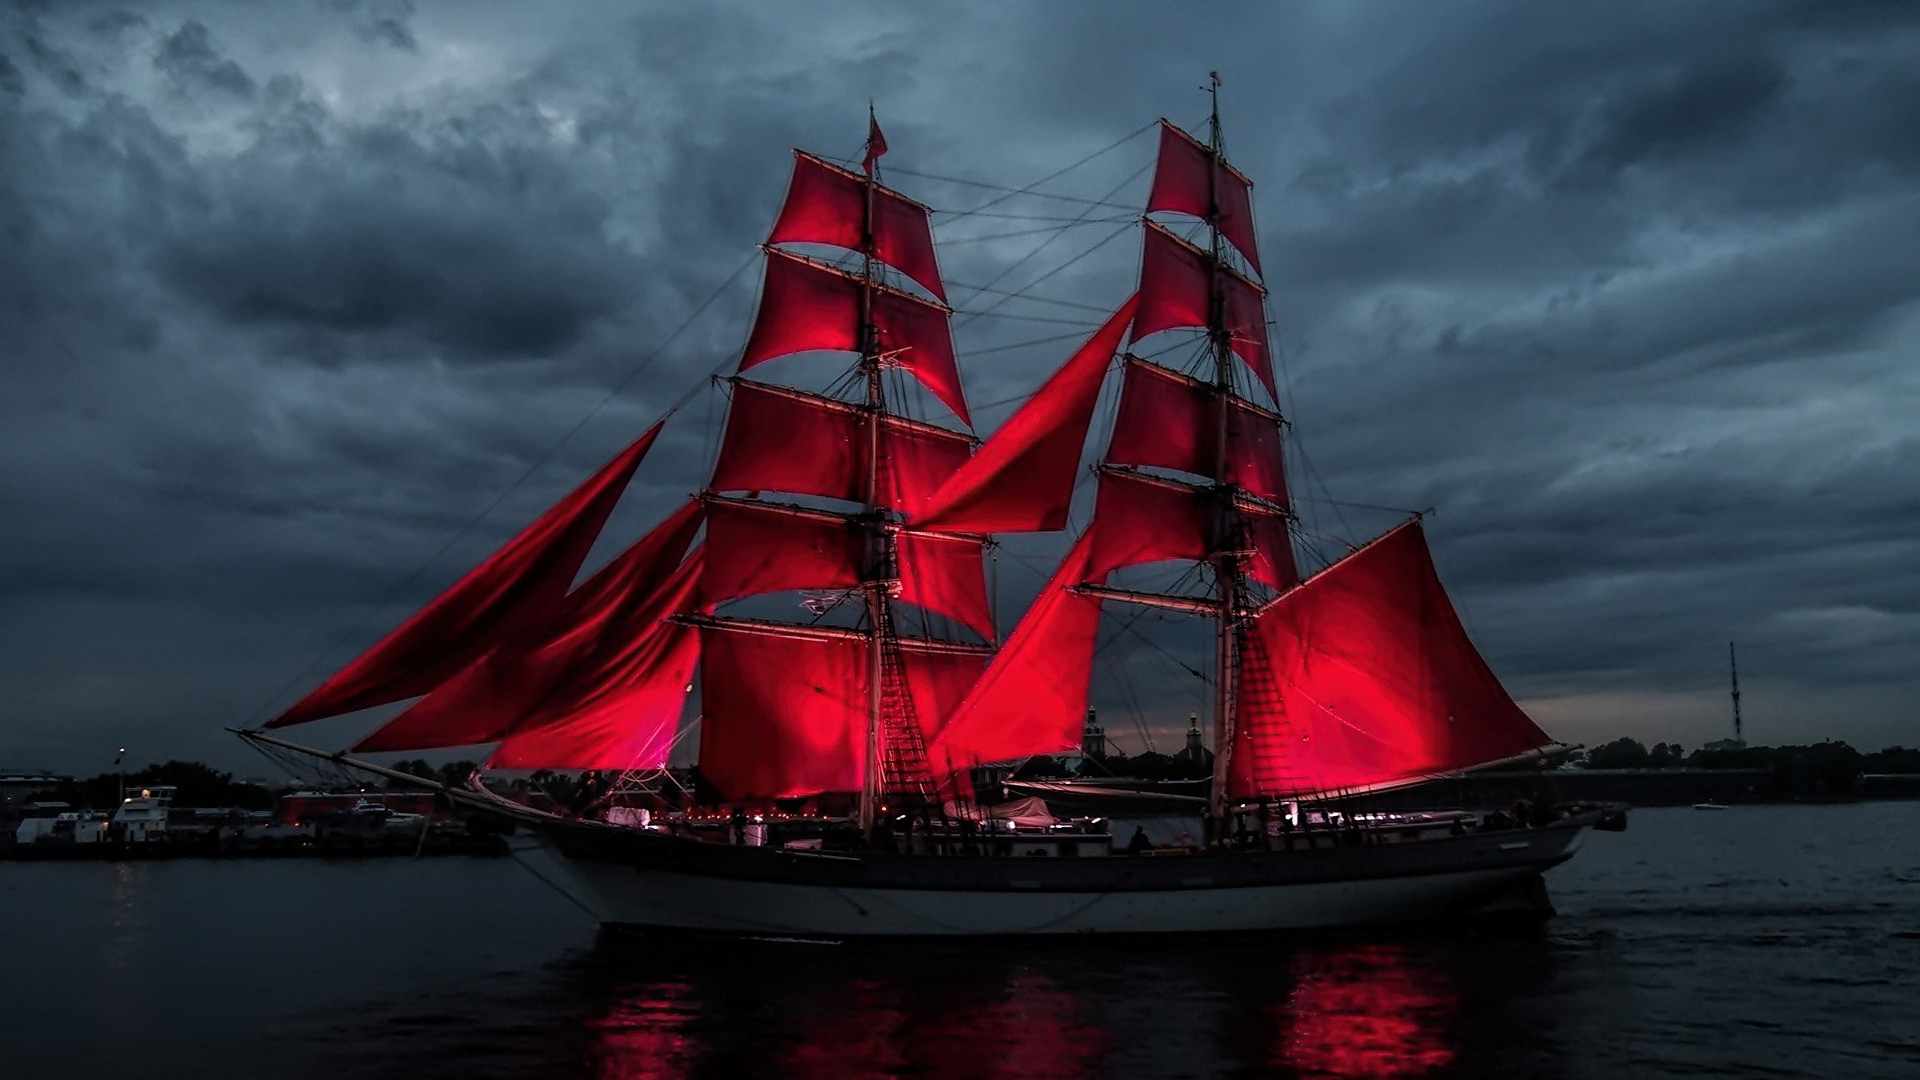 Sailboat Wallpapers, Pictures, Images